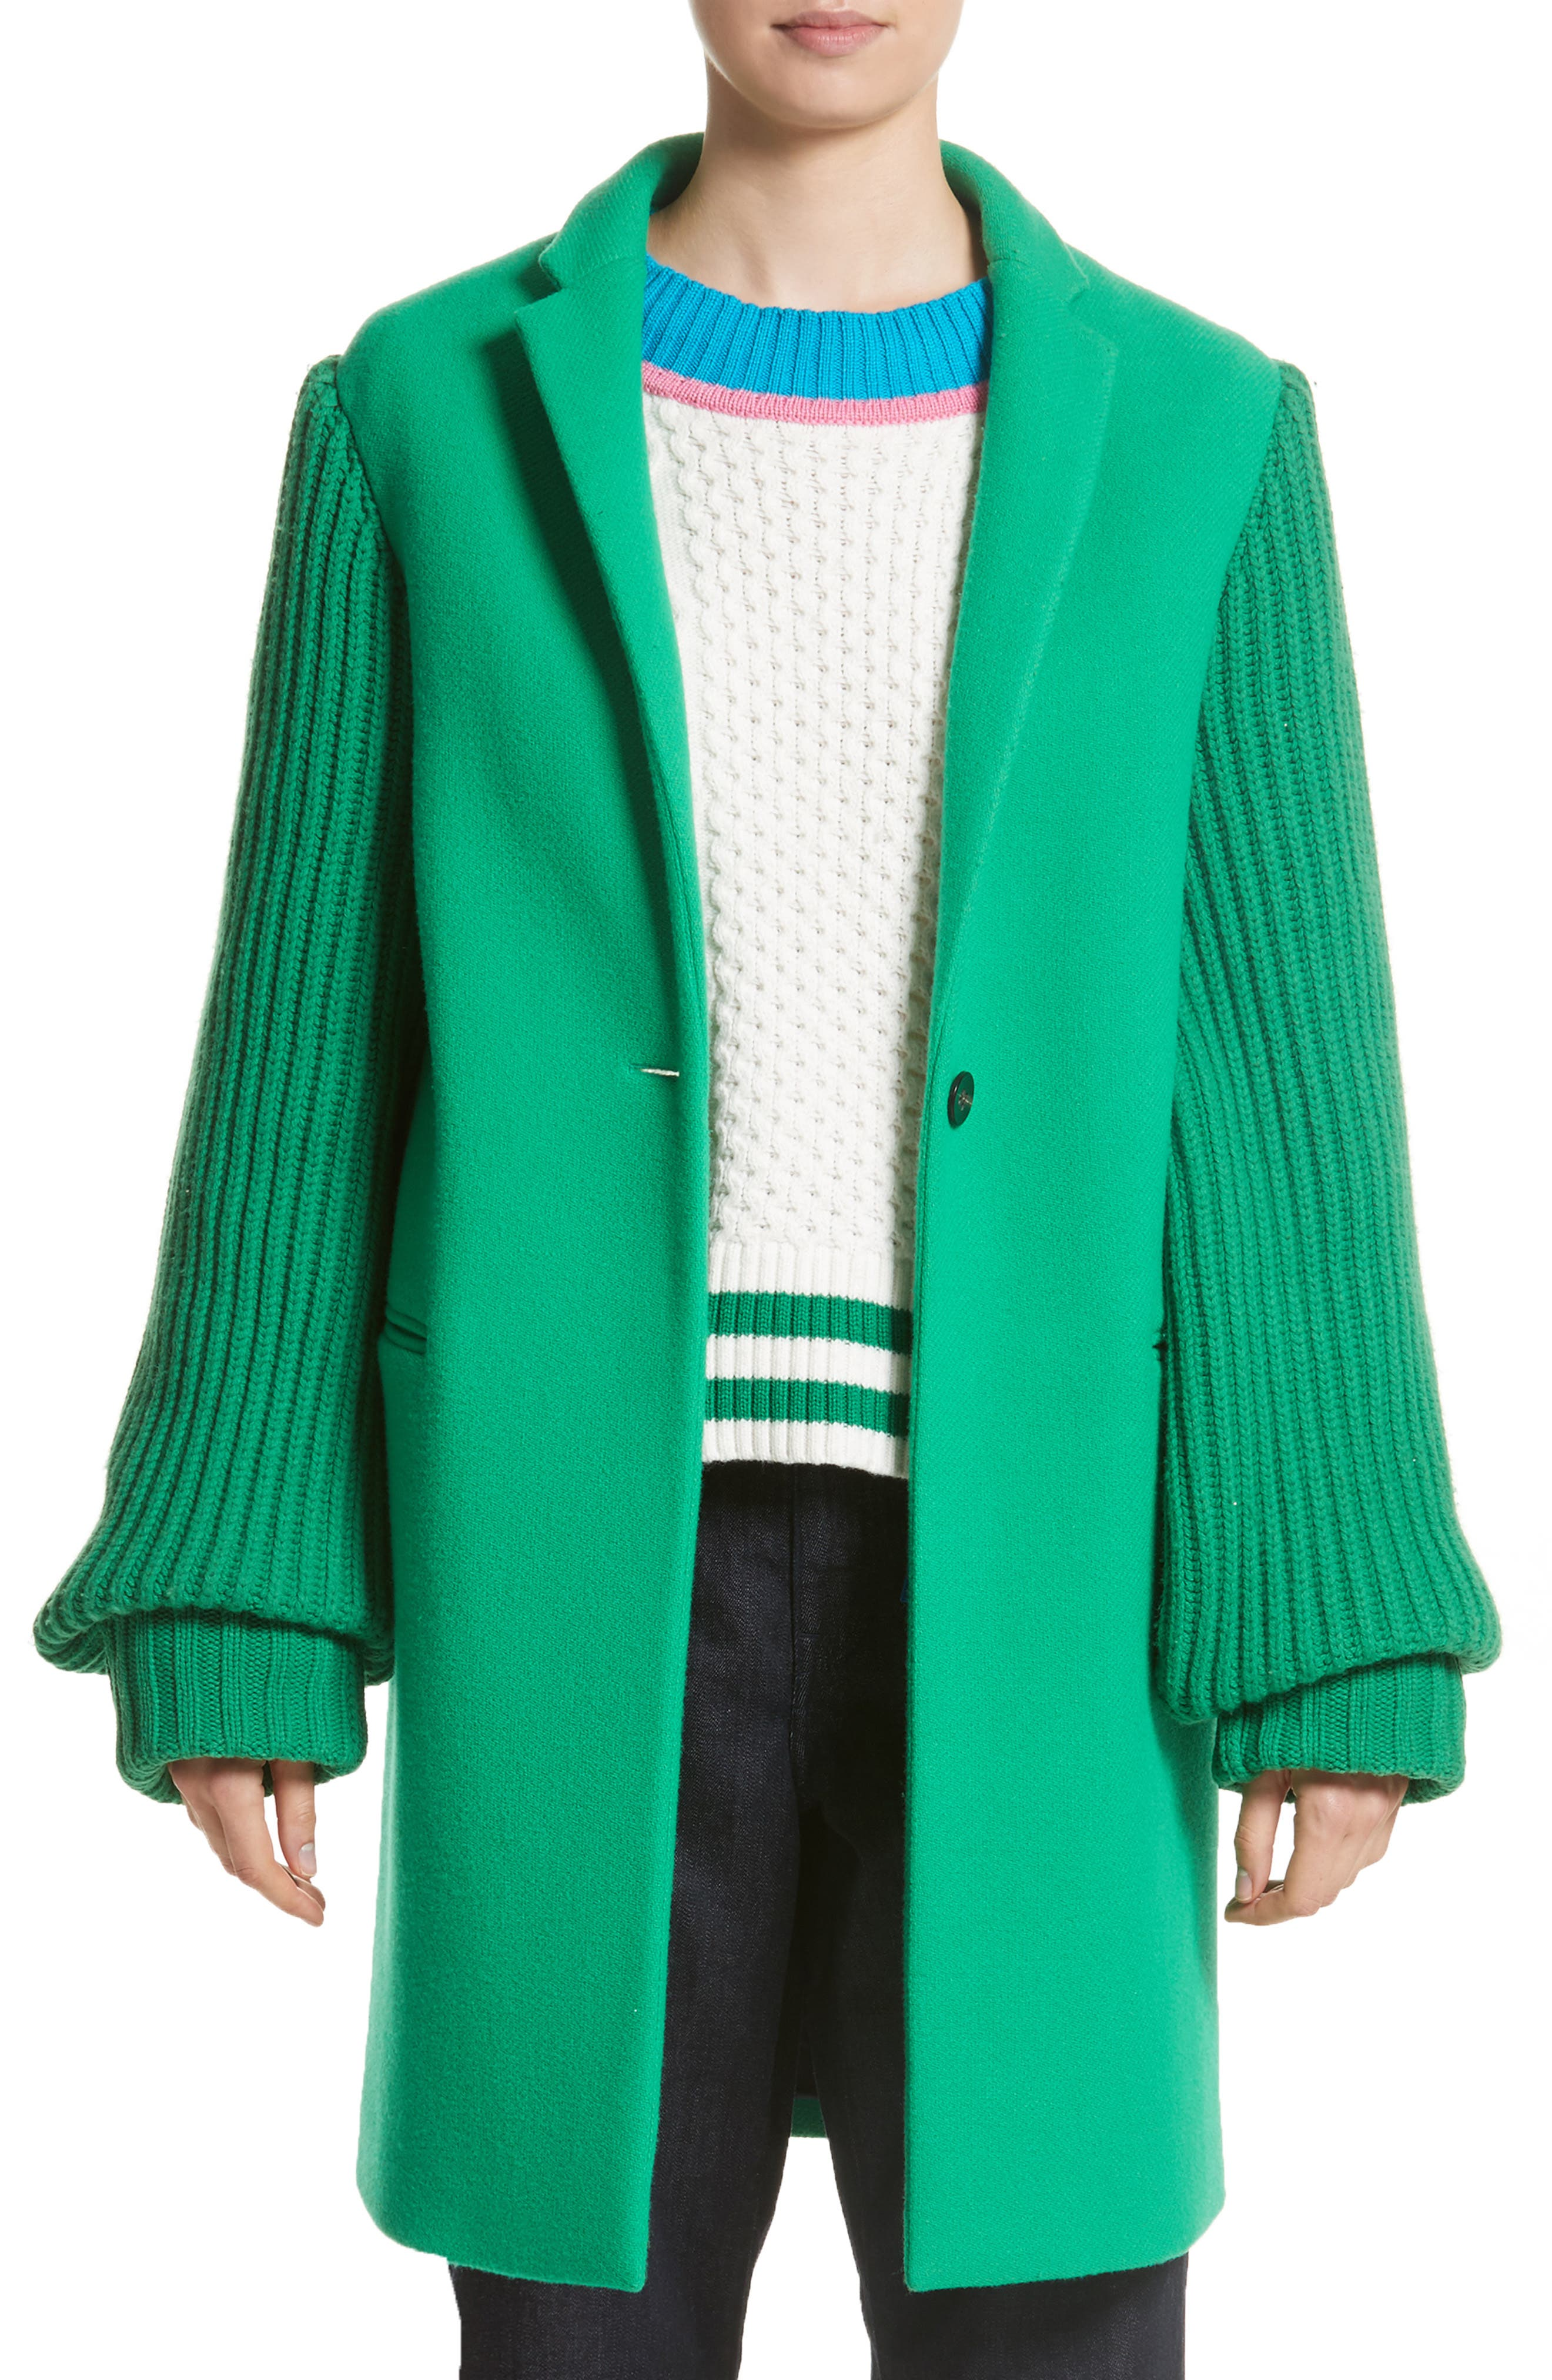 Ask Me Later Embroidered Knit Sleeve Coat,                             Main thumbnail 1, color,                             300